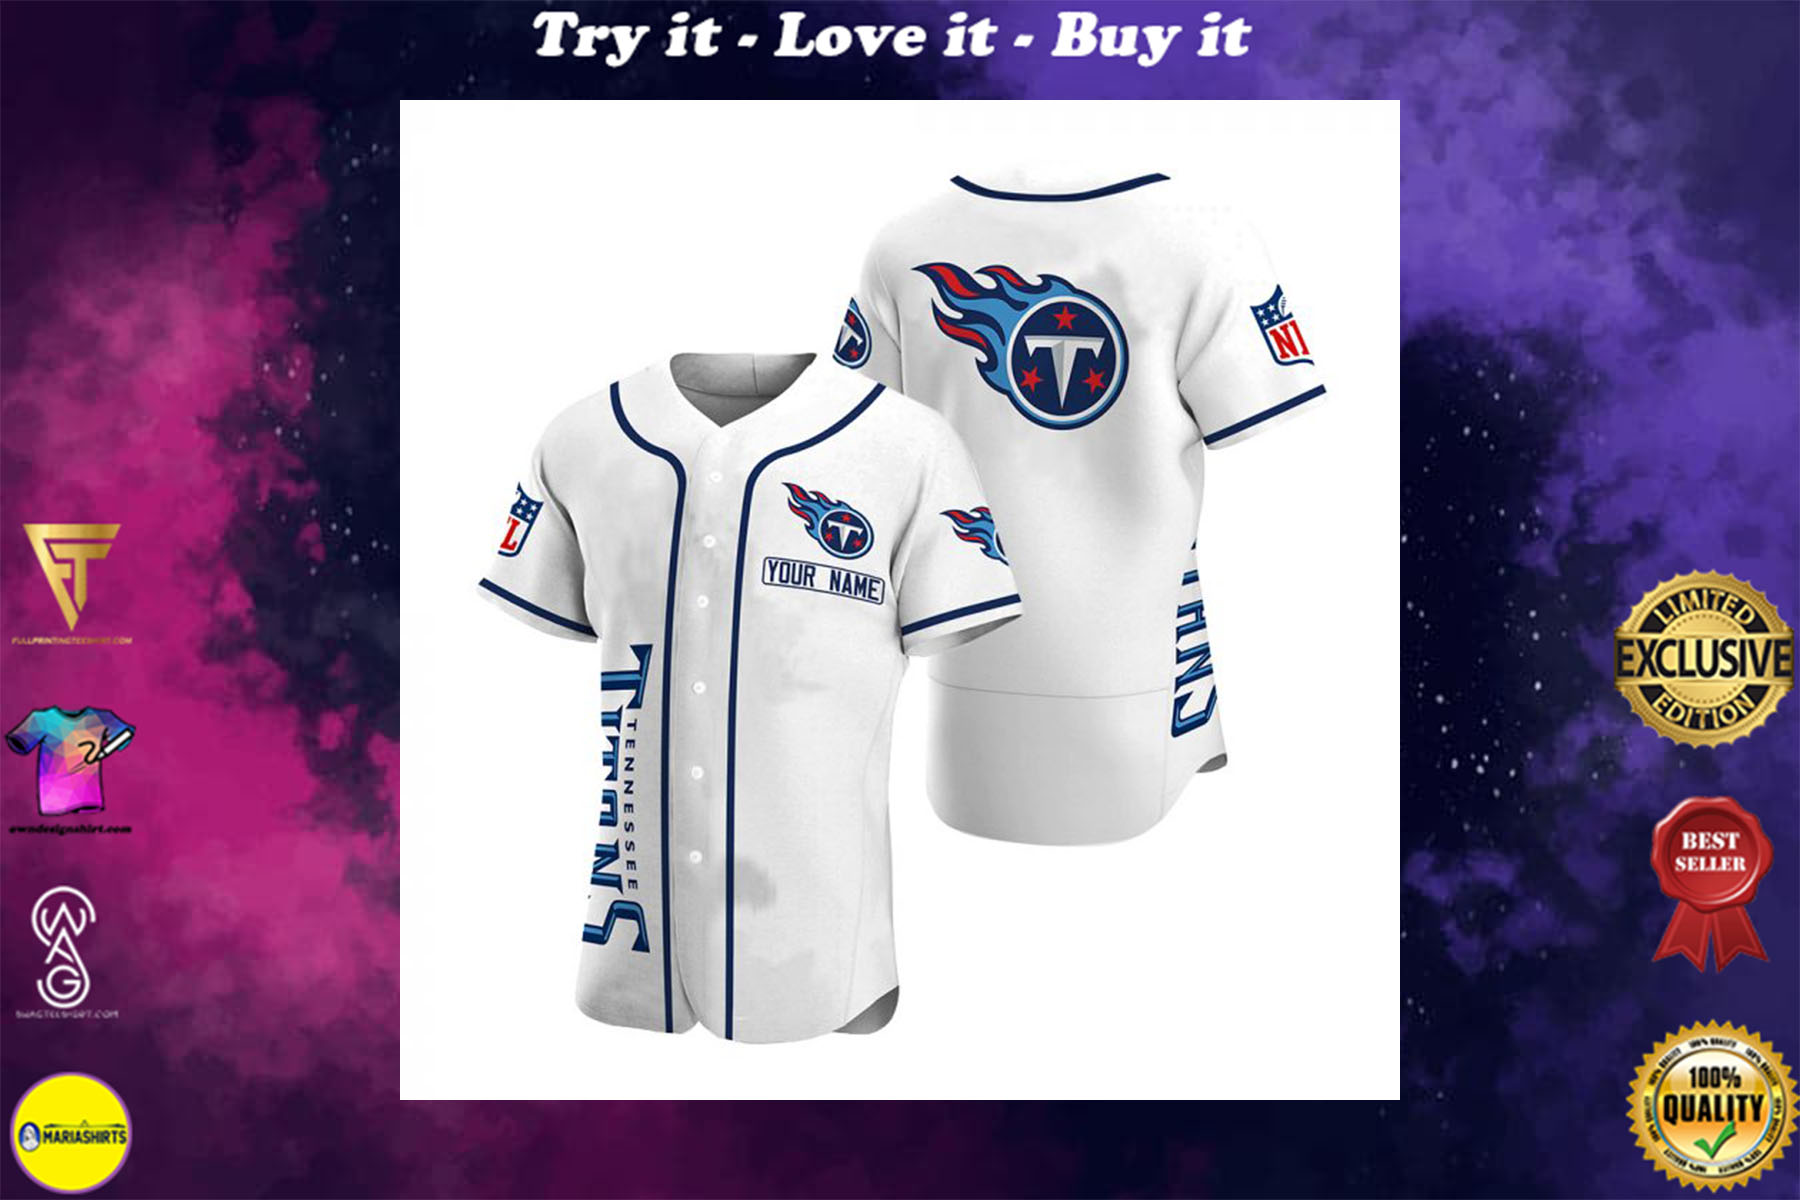 personalized name tennessee titans full printing baseball shirt - maria